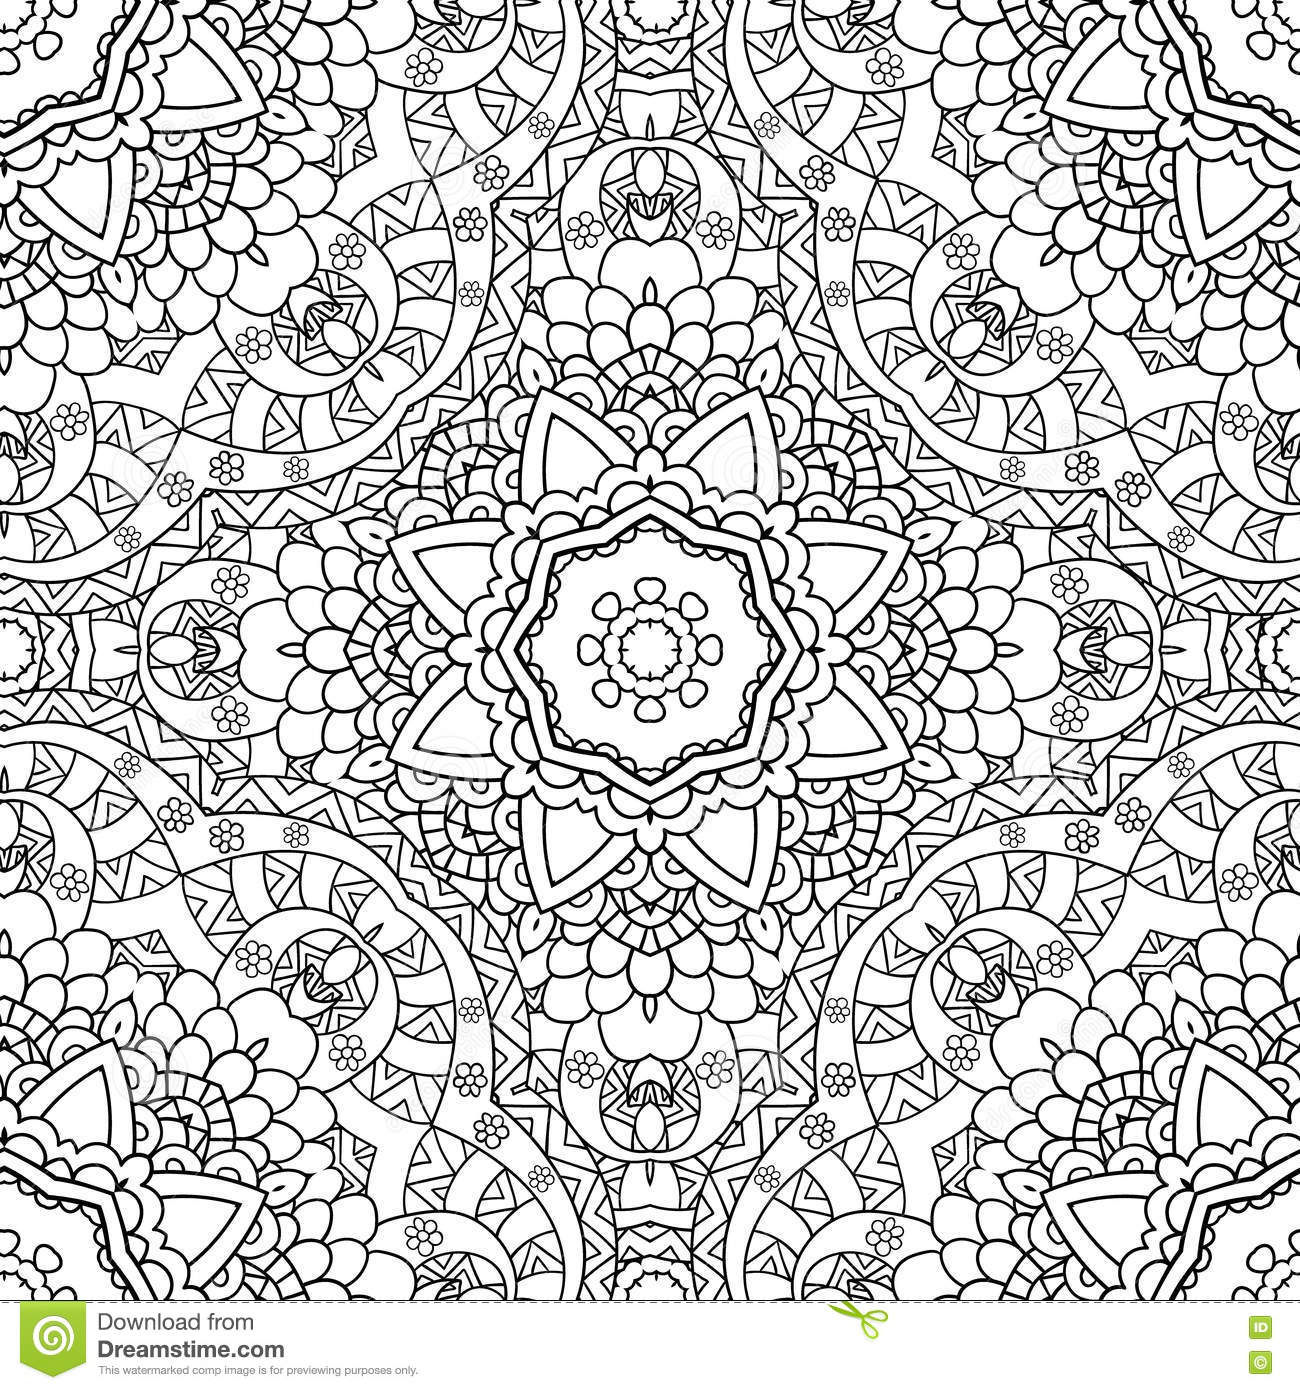 Coloring pages nature - Coloring Pages For Adults Decorative Hand Drawn Doodle Nature Ornamental Curl Vector Sketchy Seamless Pattern